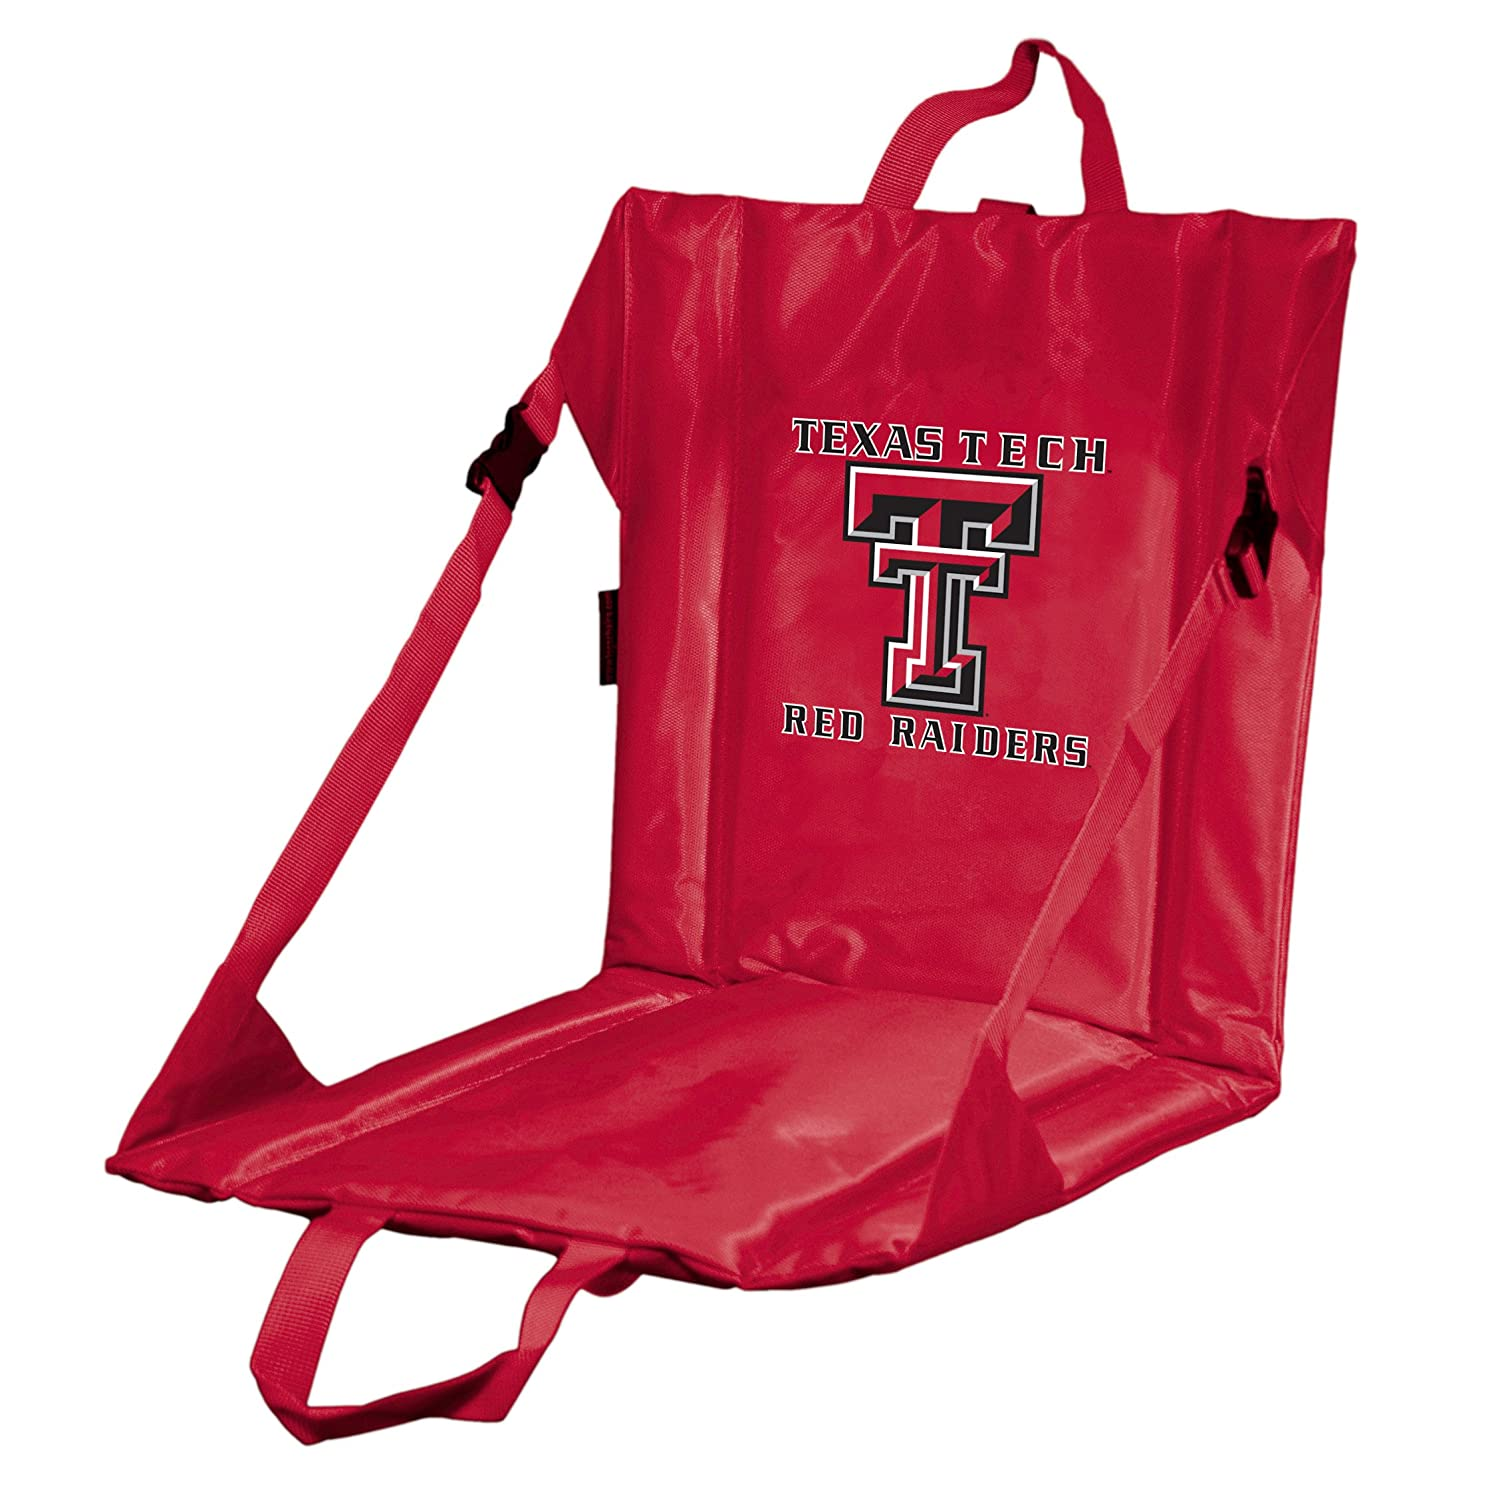 Collegiate Collapsible Foam Padded Stadium Seat with Velcro Bleacher Attachment